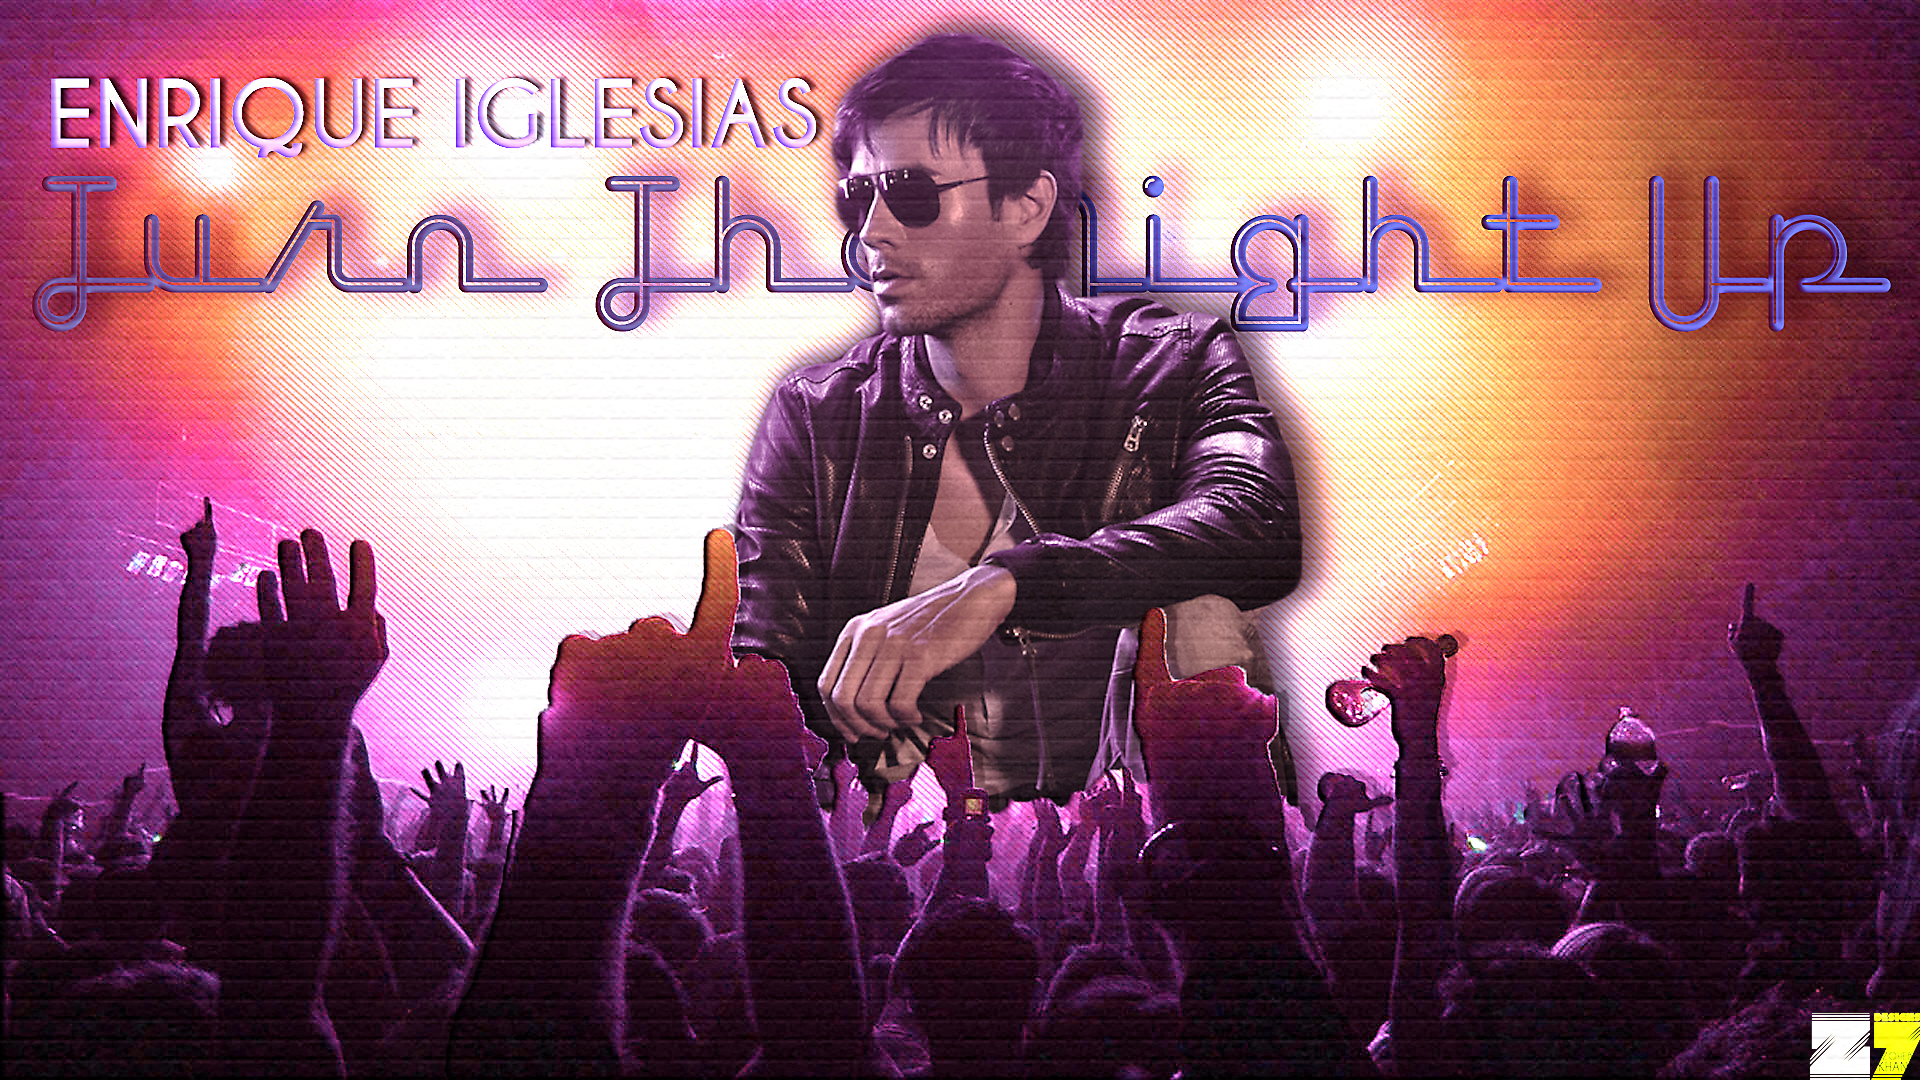 Enrique Iglesias - Turn The Night Up by Zohebkhoja on ...